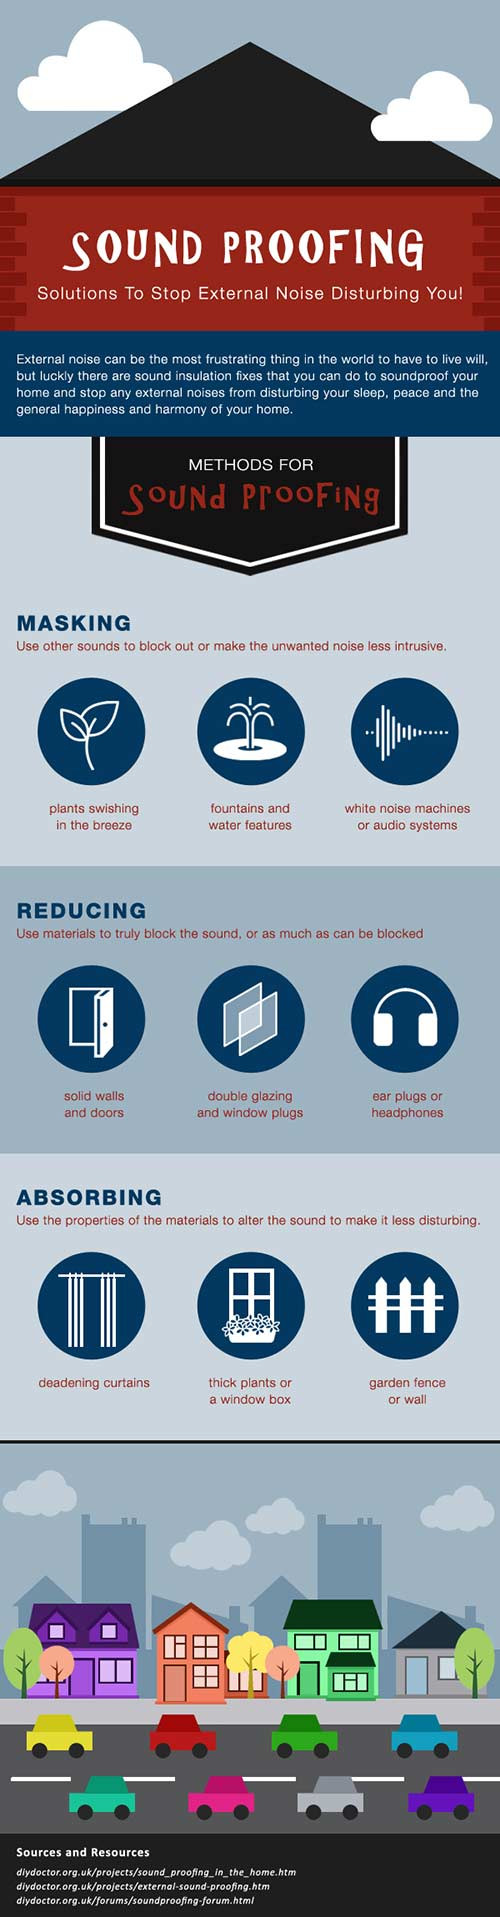 How to reduce unwanted external noise